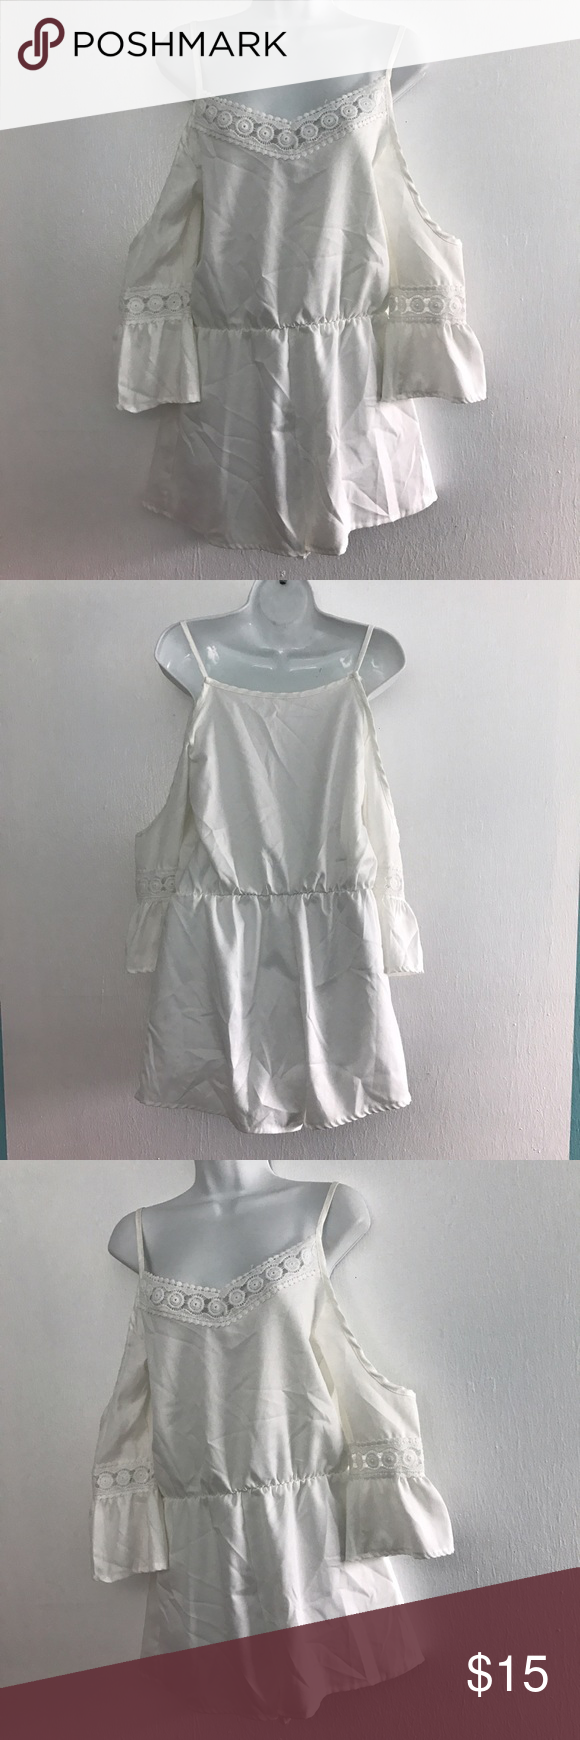 Poet Sleeve Cold Shoulder Romper Beautiful white poly Romper. Total length 30 in. Chest 32 in. Other